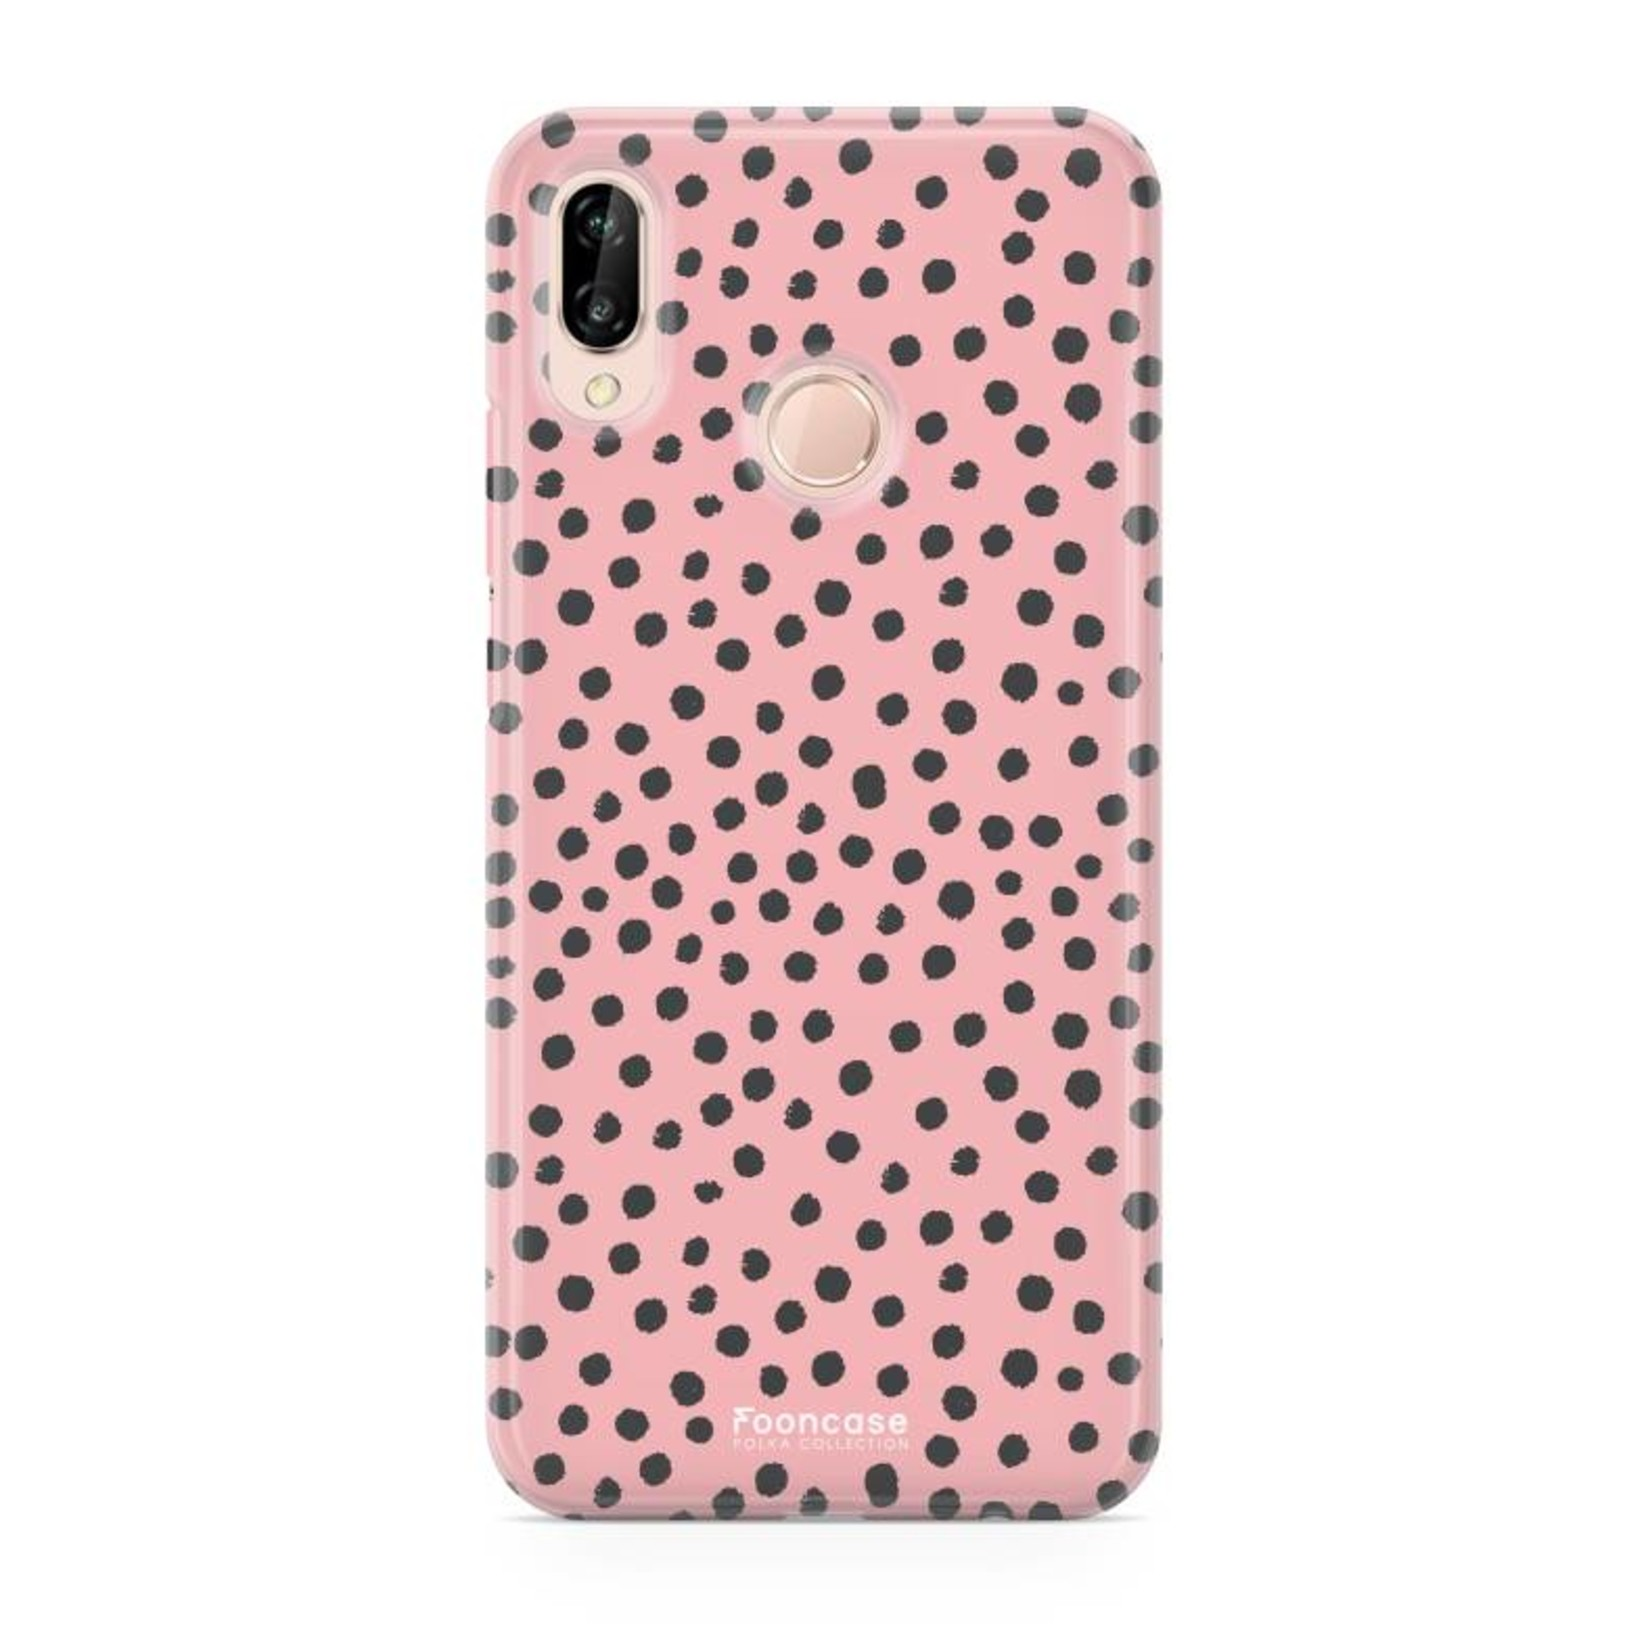 FOONCASE Huawei P20 Lite - POLKA COLLECTION / Rosa